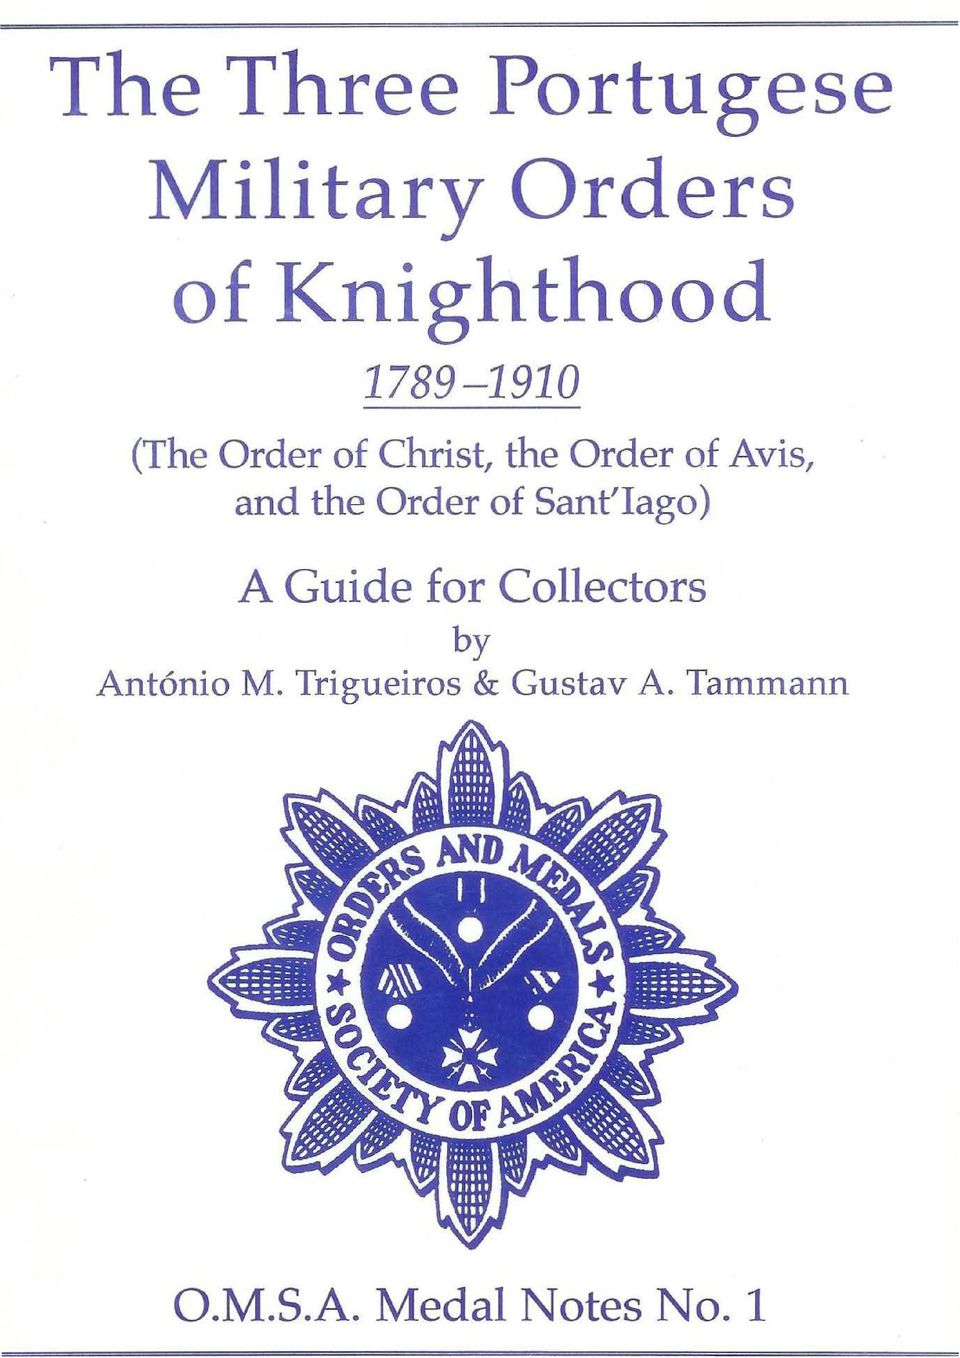 The Three Portugese Military Orders of Knighthood - PDF